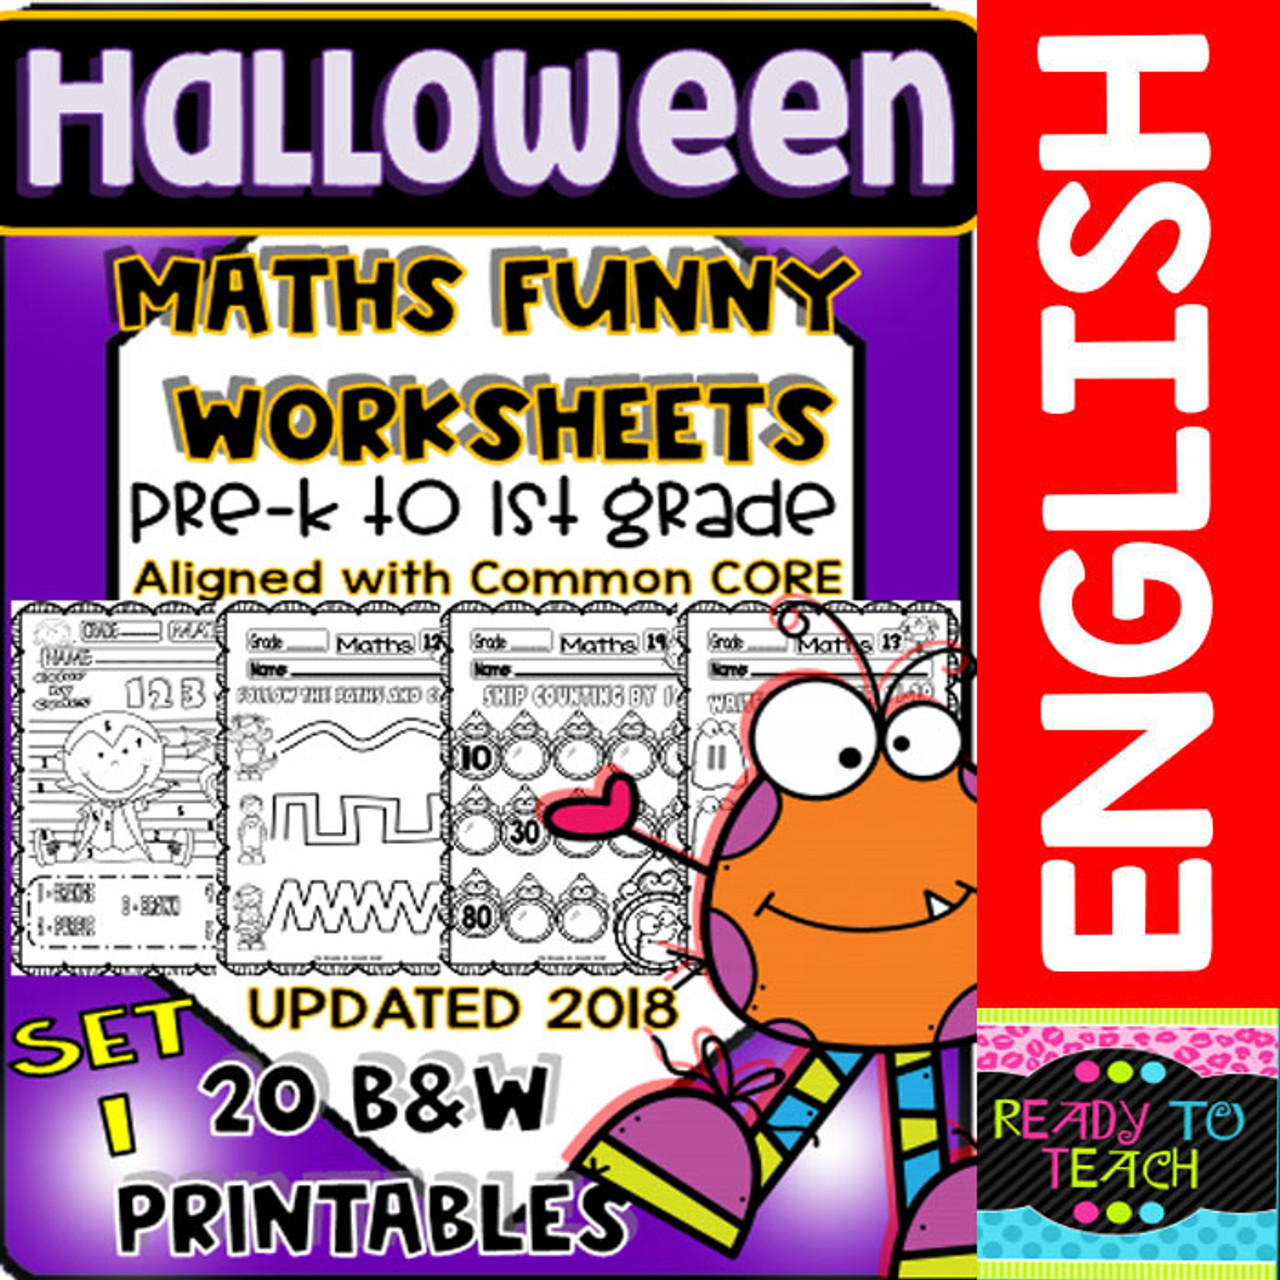 small resolution of Halloween Maths Funny Worksheets - 20 B\u0026W Printables - Set 1 - Amped Up  Learning